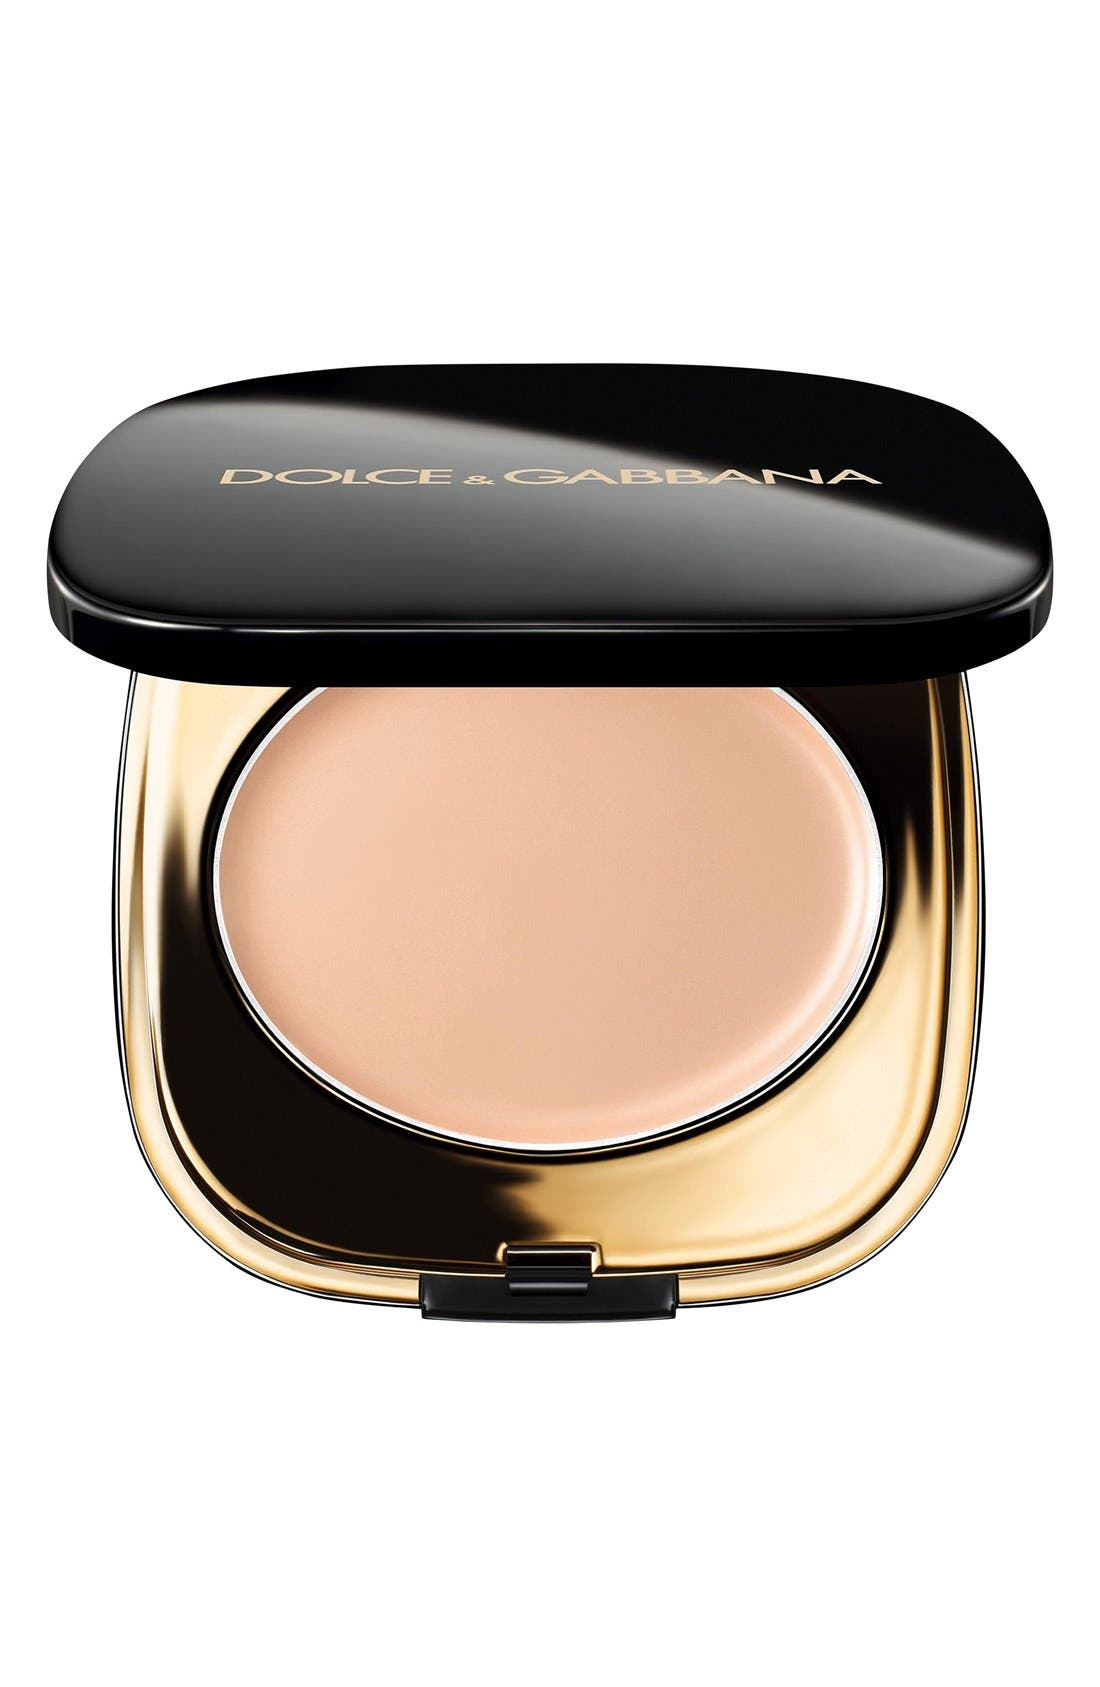 Dolce&Gabbana Beauty 'Blush of Roses - Rosa del Mattino' Creamy Face Colour